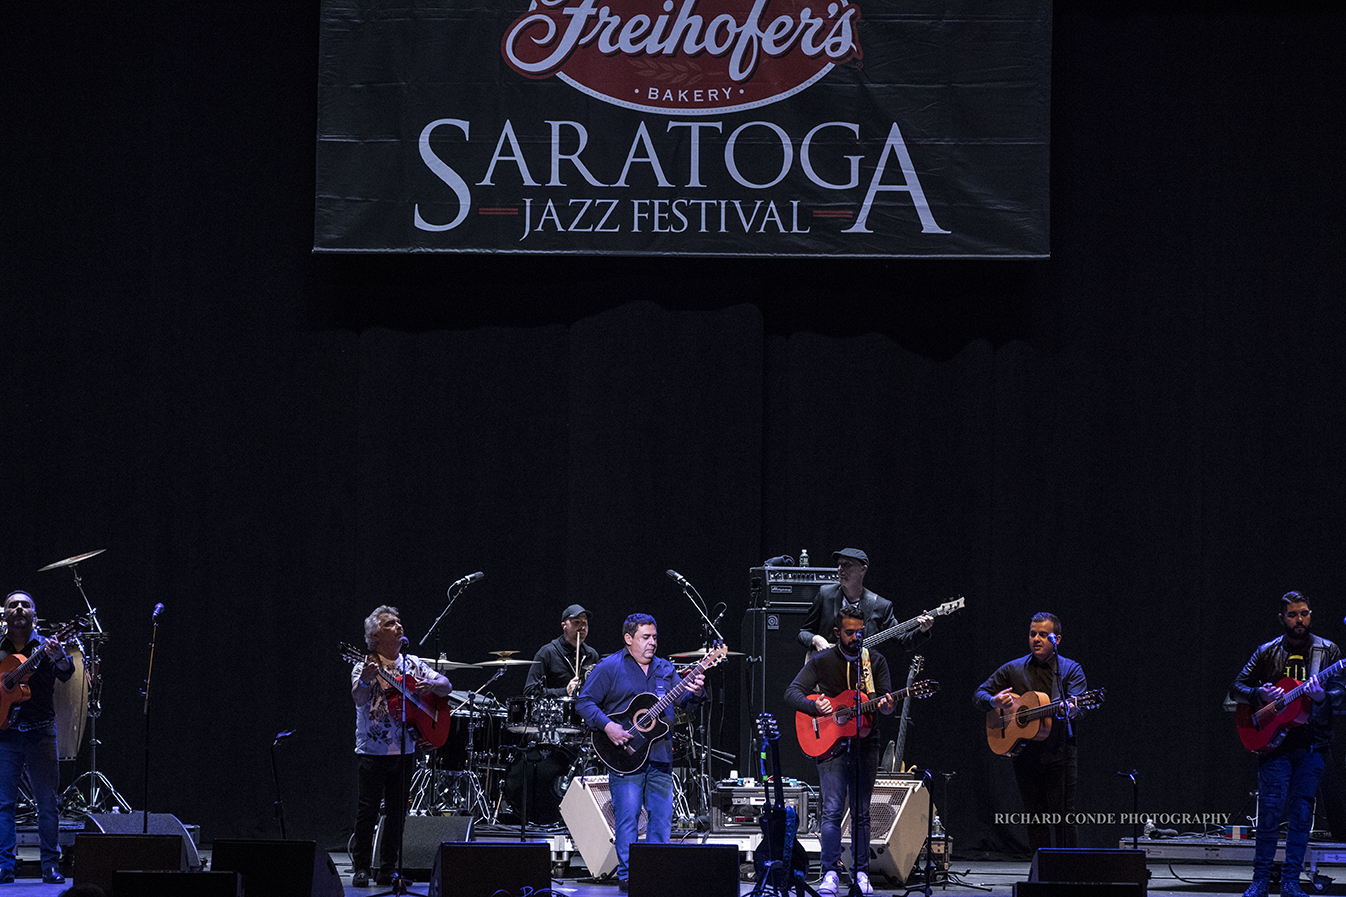 The Gipsy Kings at the Freihofer Saratoga Jazz Festival 2017